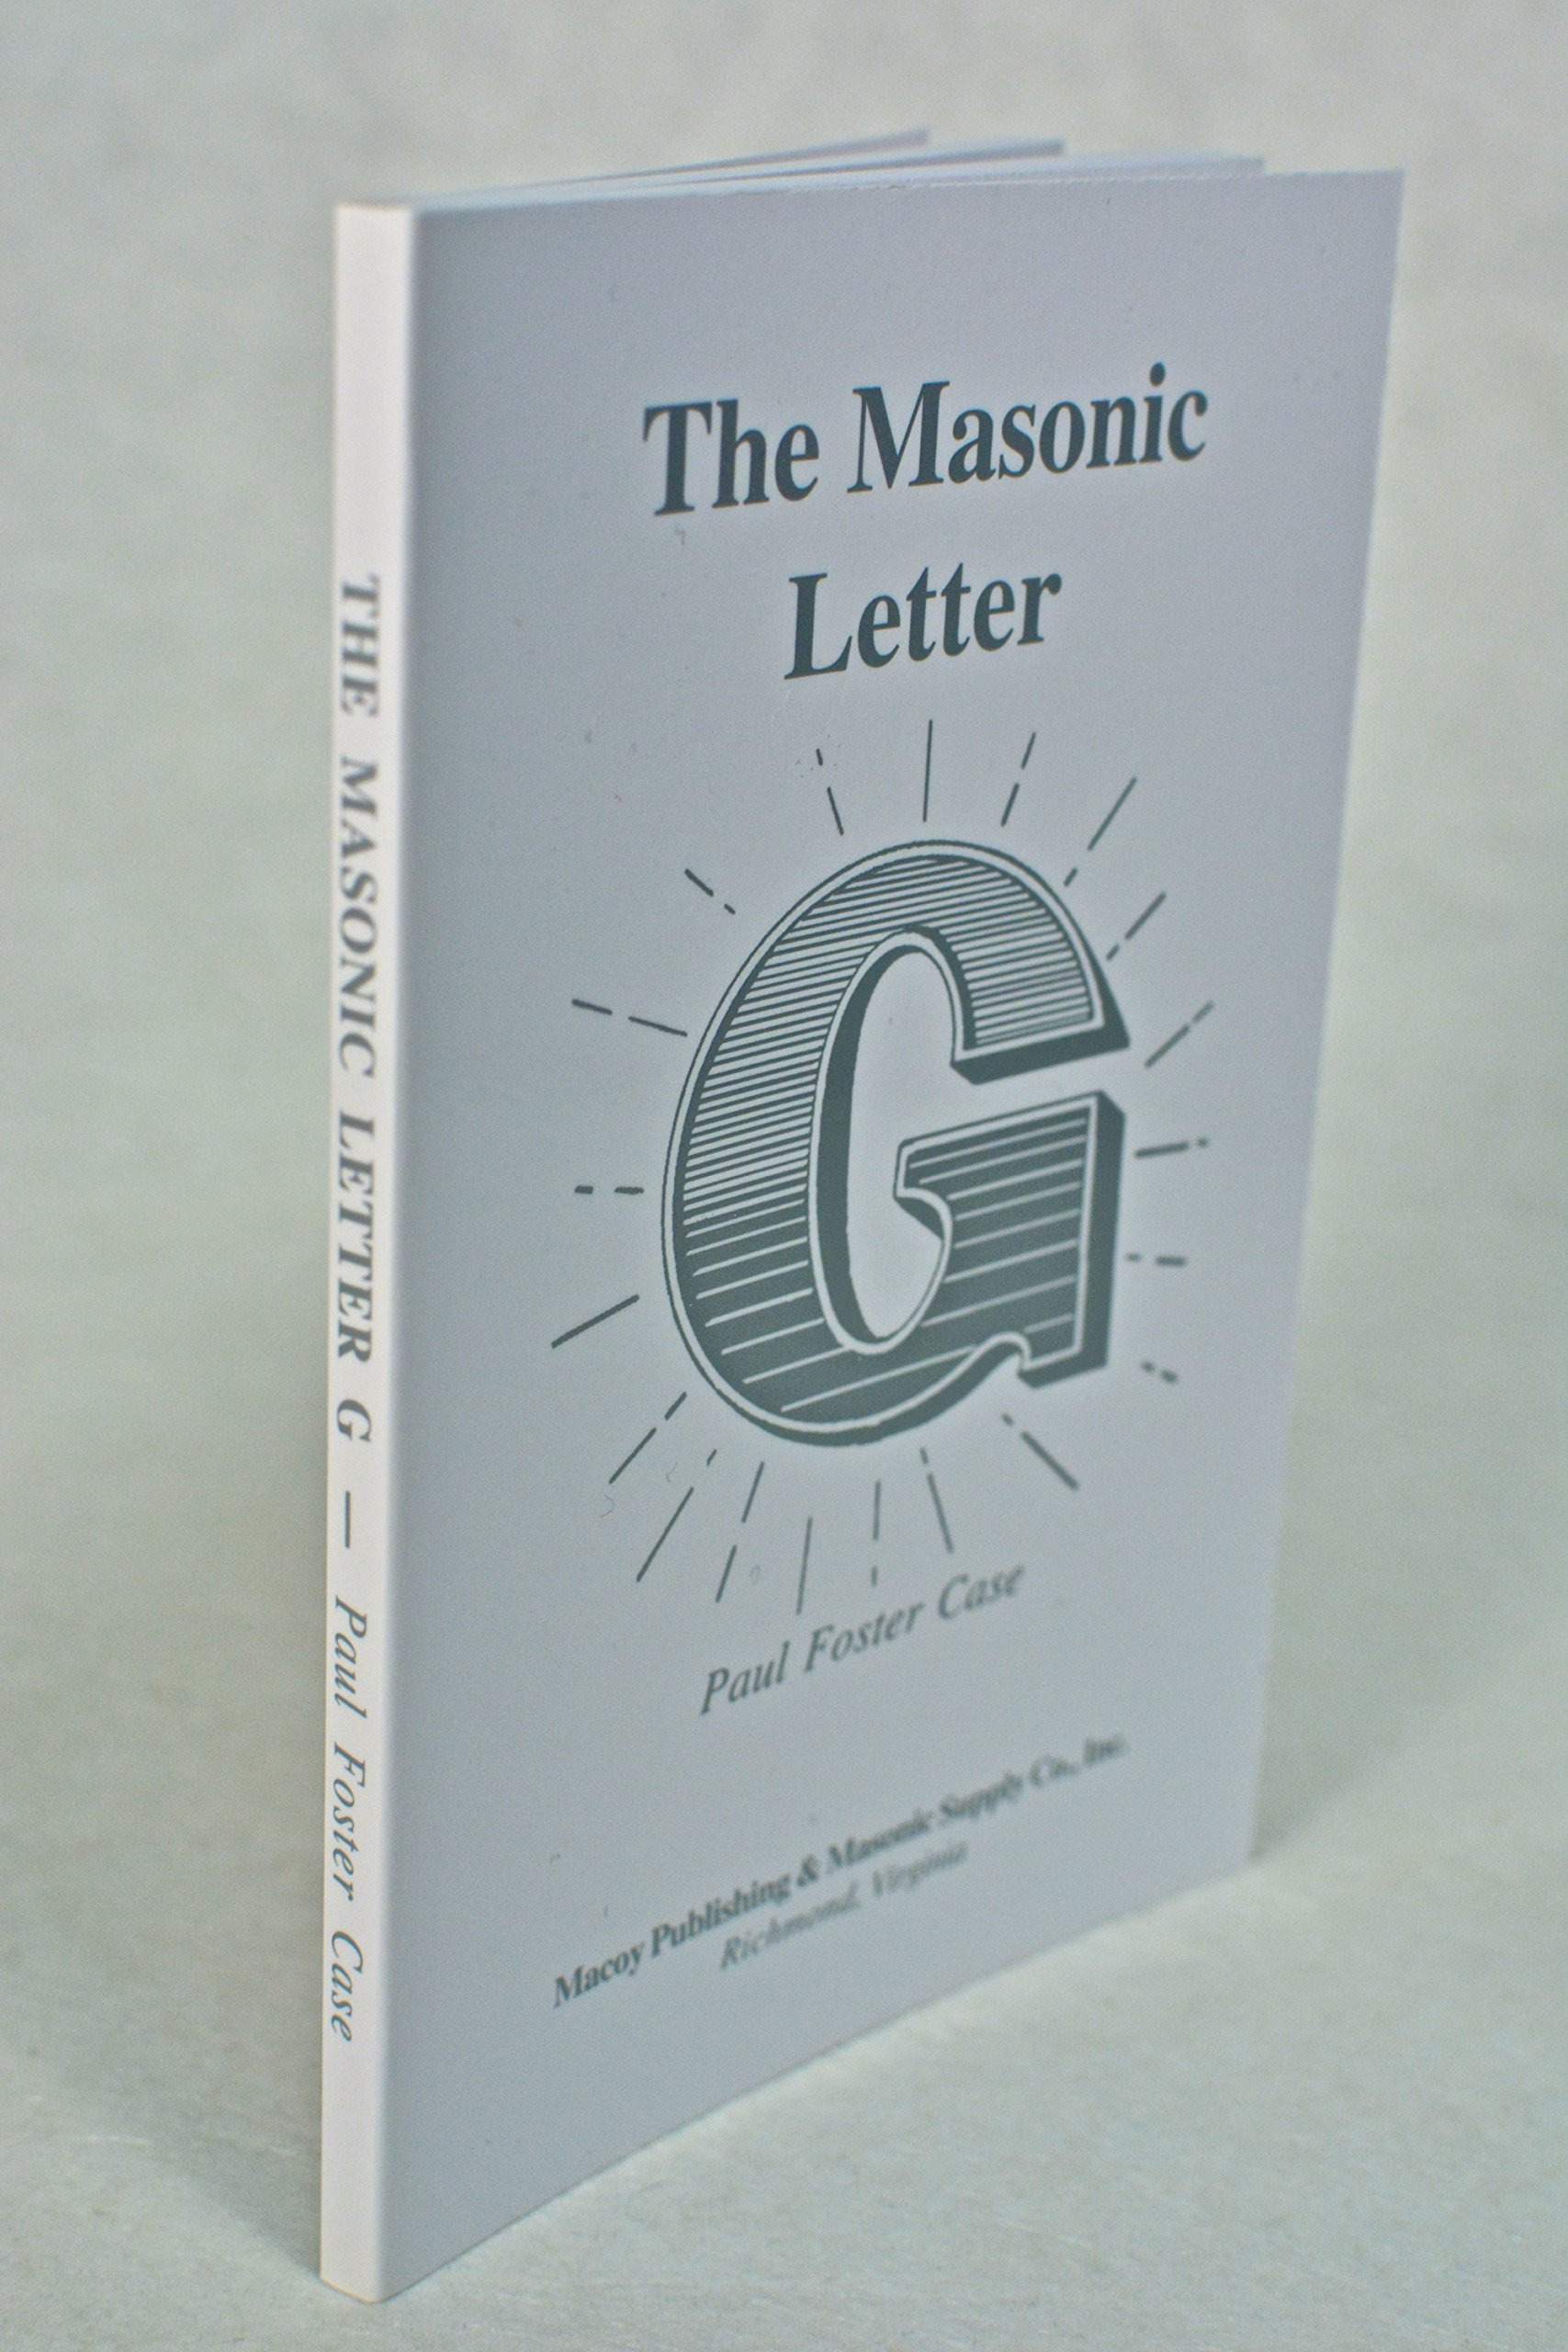 The masonic letter g paul foster case 9780880530668 amazon books thecheapjerseys Image collections